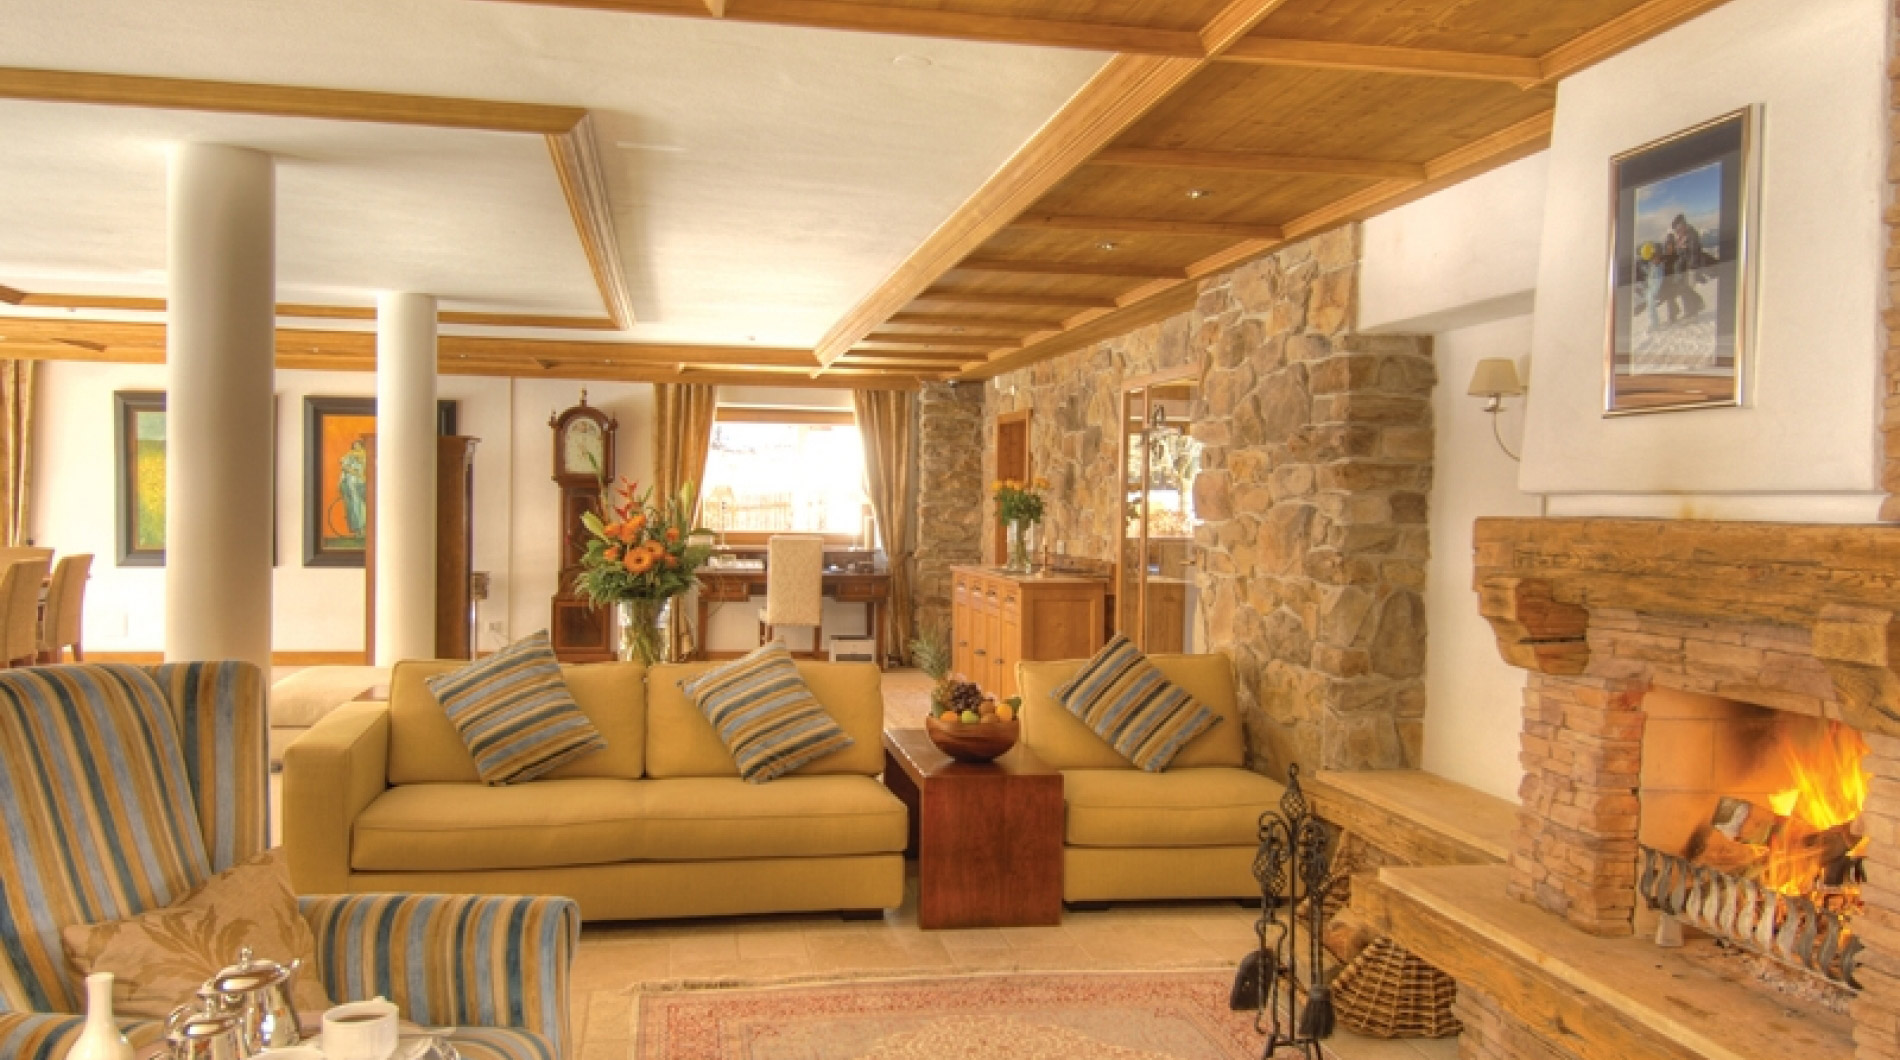 The extensive living room of Luxury Chalet Panorama in Maria Alm with a roaring log fire